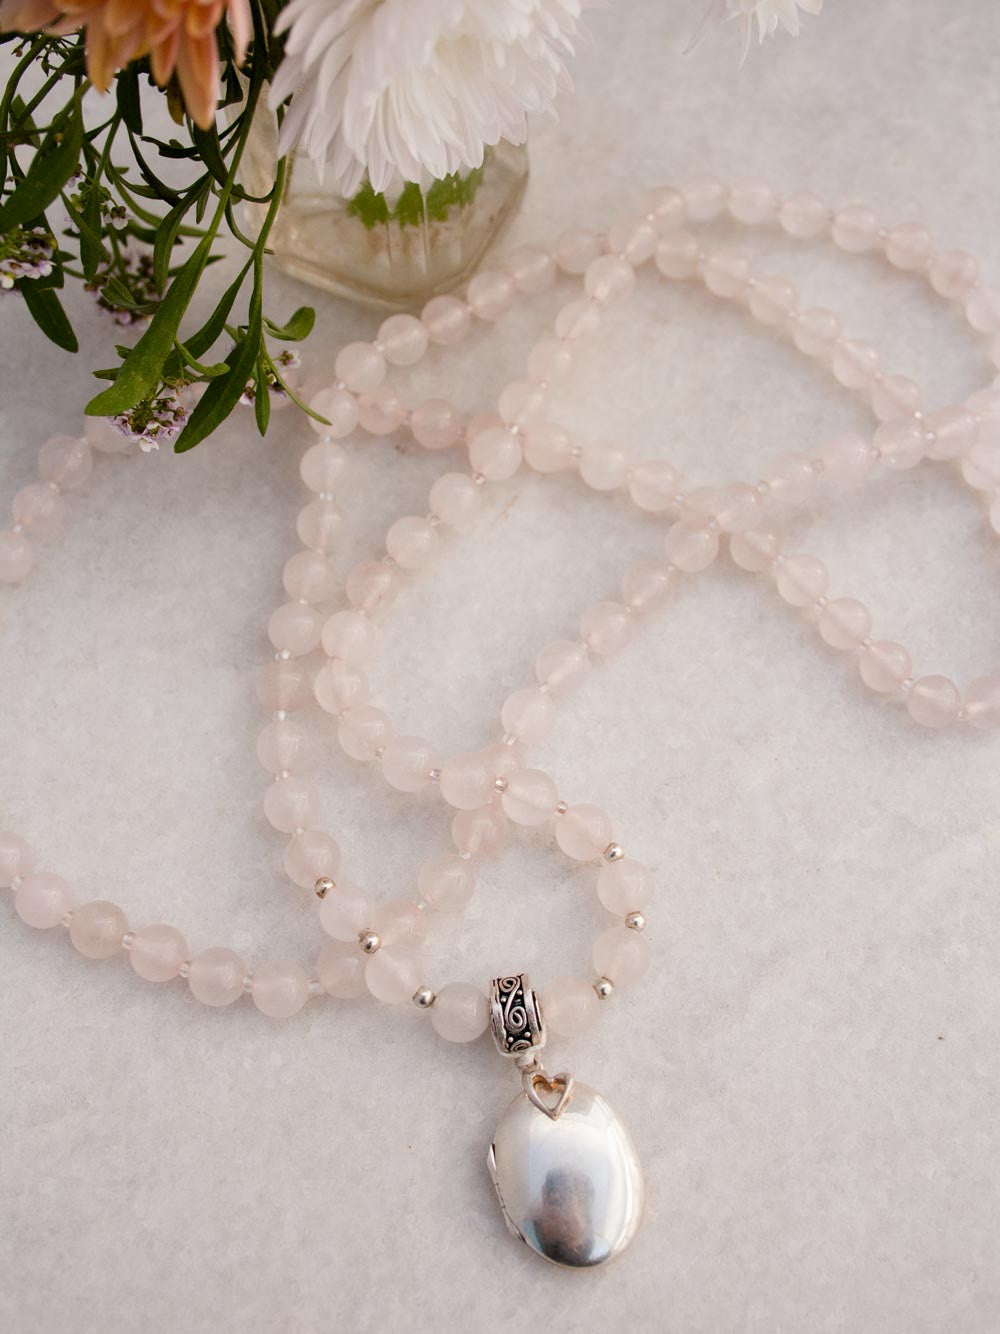 Eternal Love Mala, made with heart in rose quartz, has a silver etched Guru bead, & oval locket & heart: full view